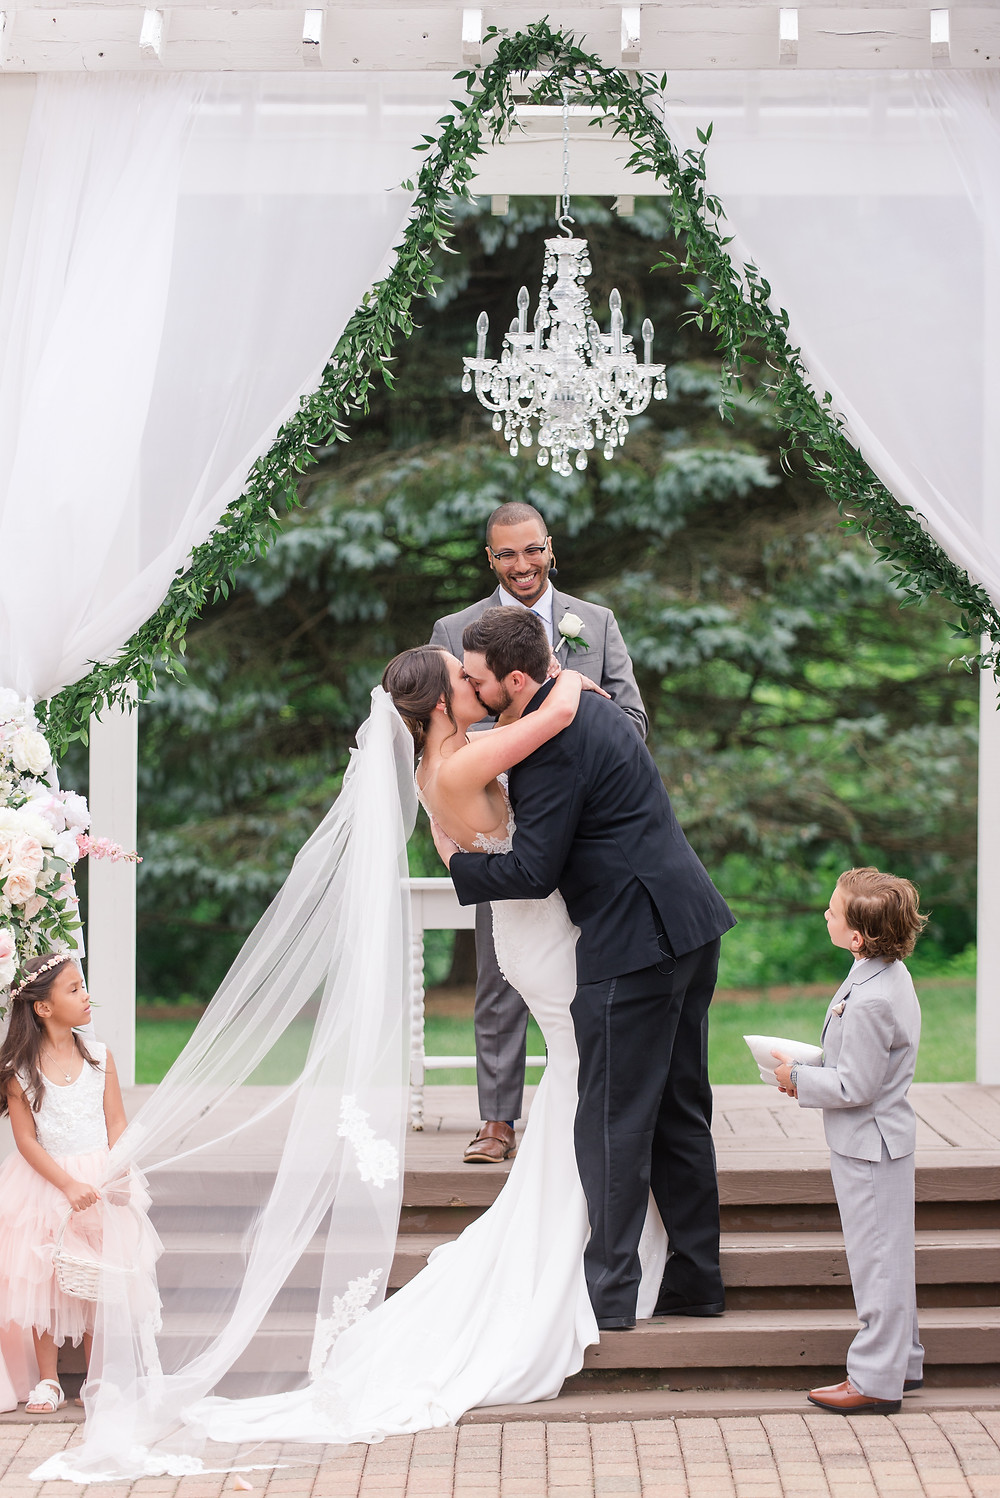 Wedding-Photography-Tips-and-tricks